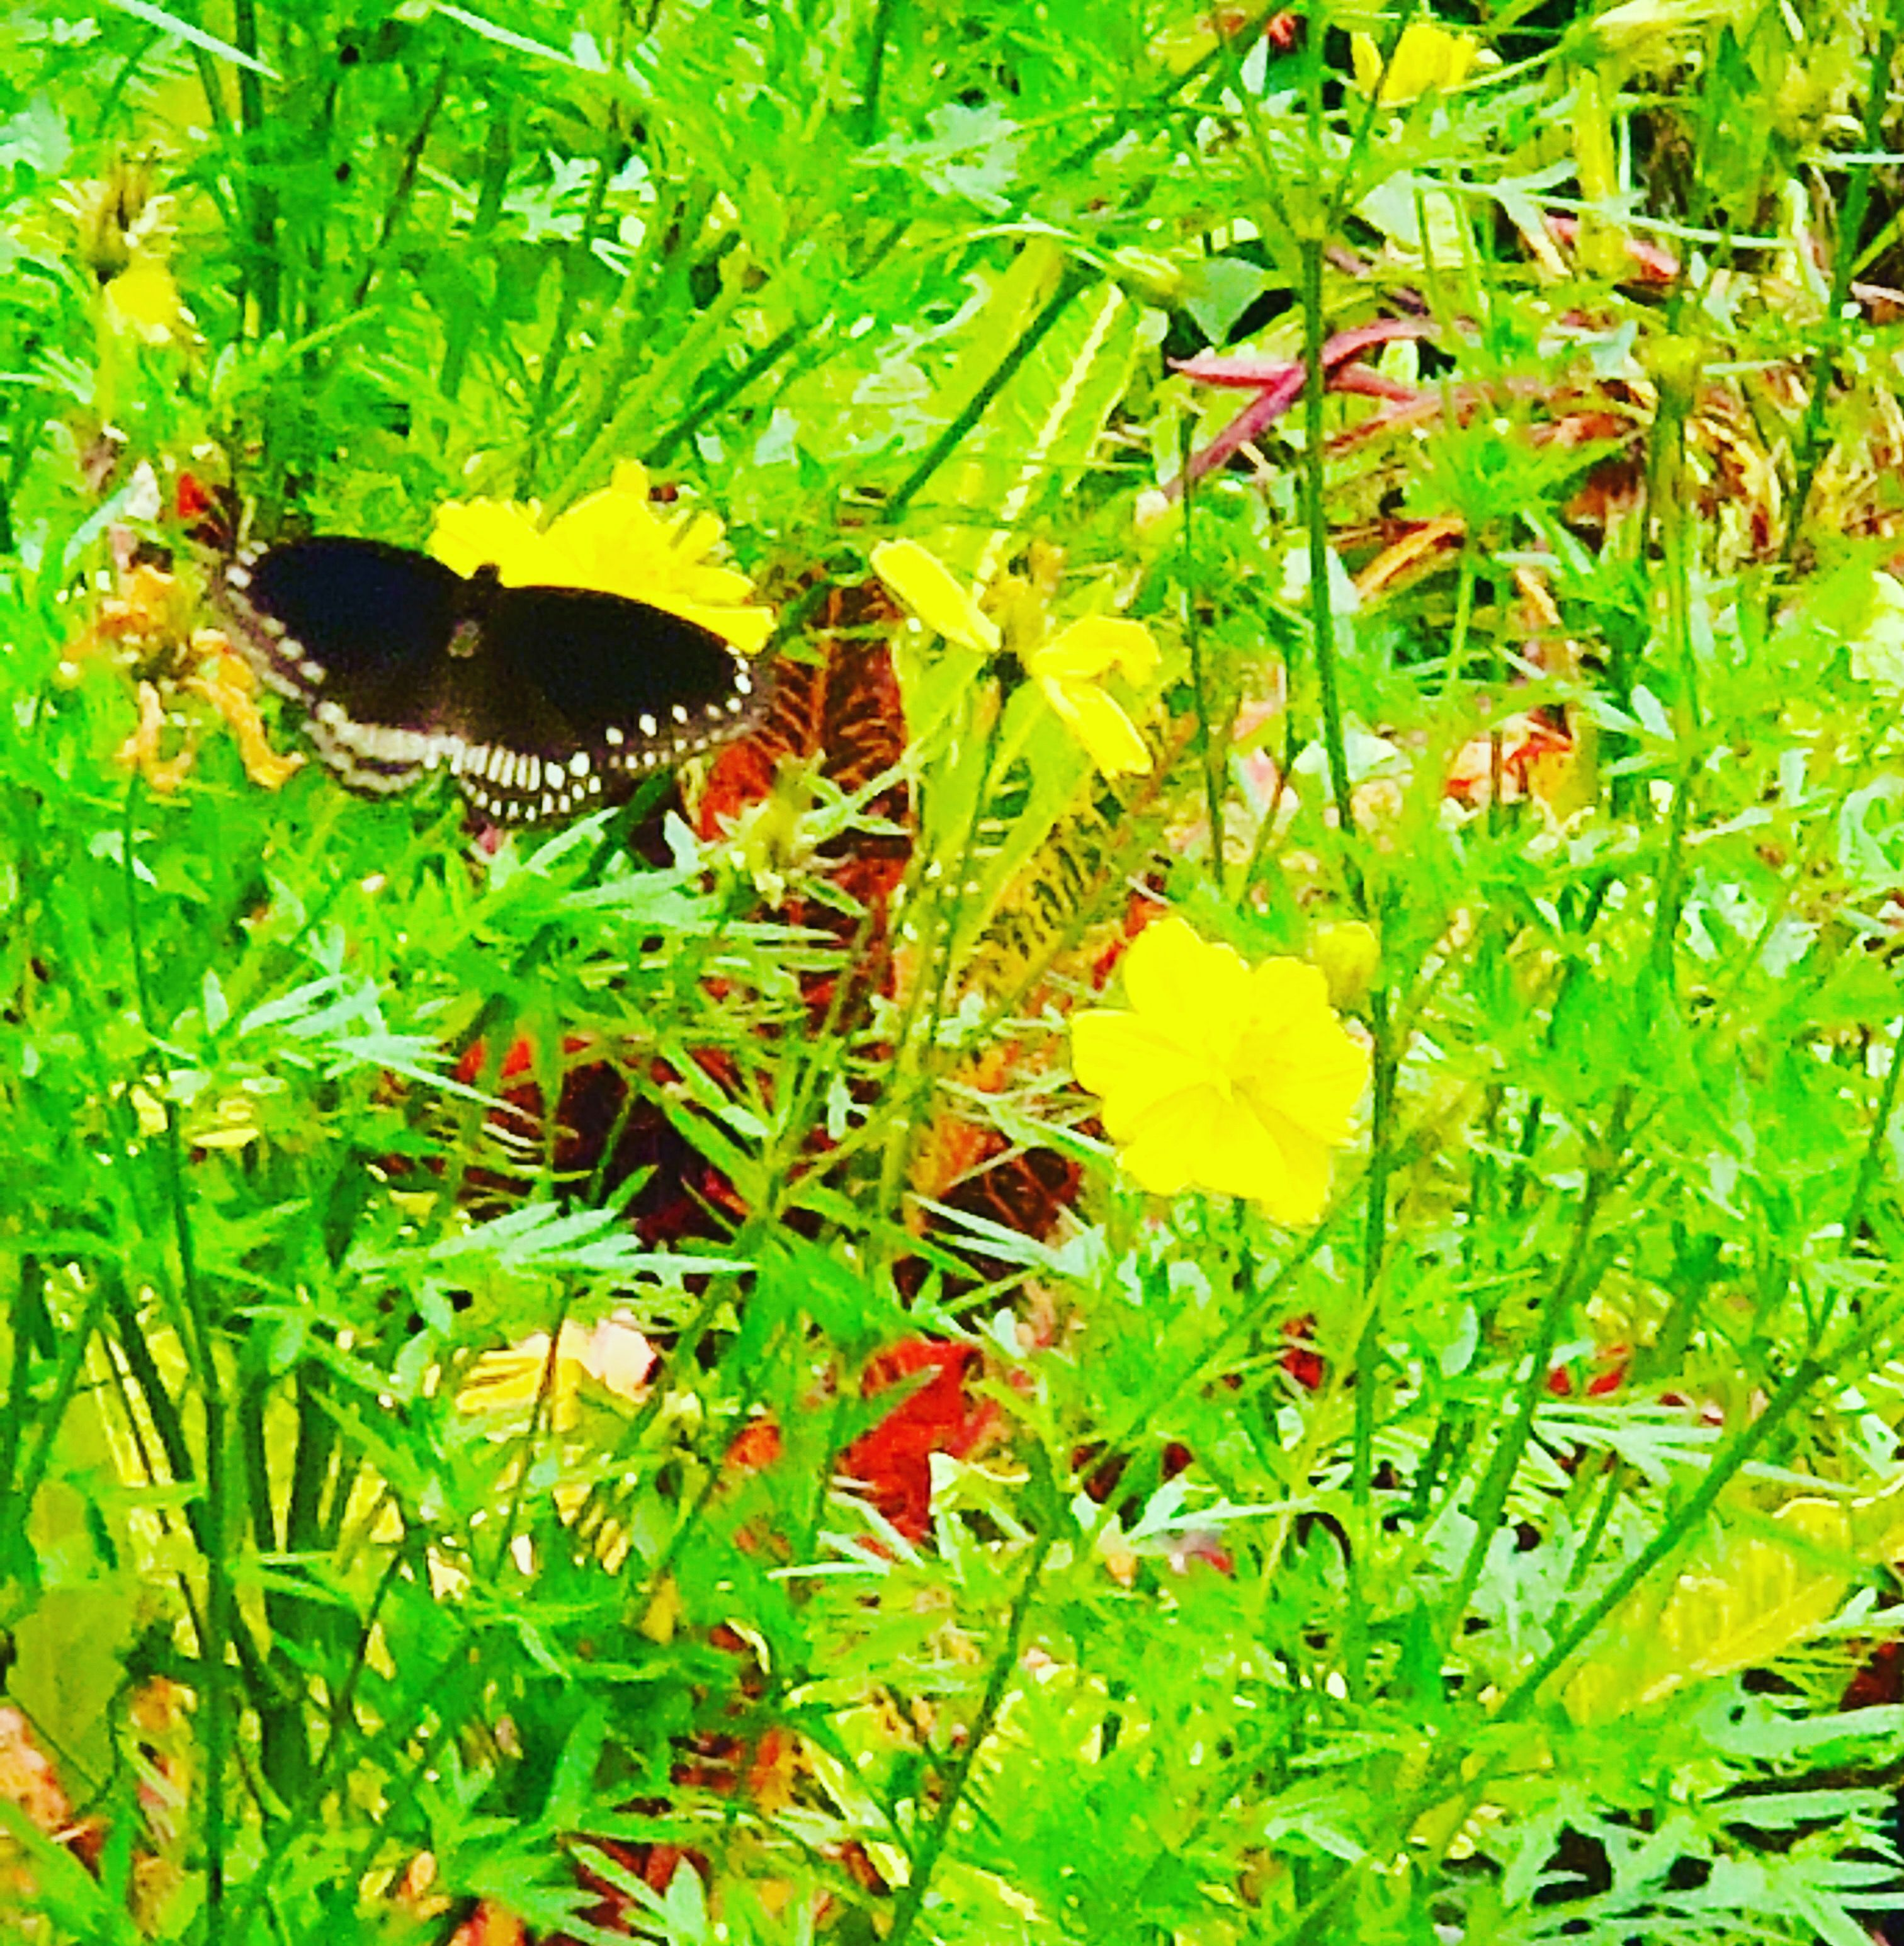 Kerala Holiday Butterfly park, Asia travel, Travel scrapbook